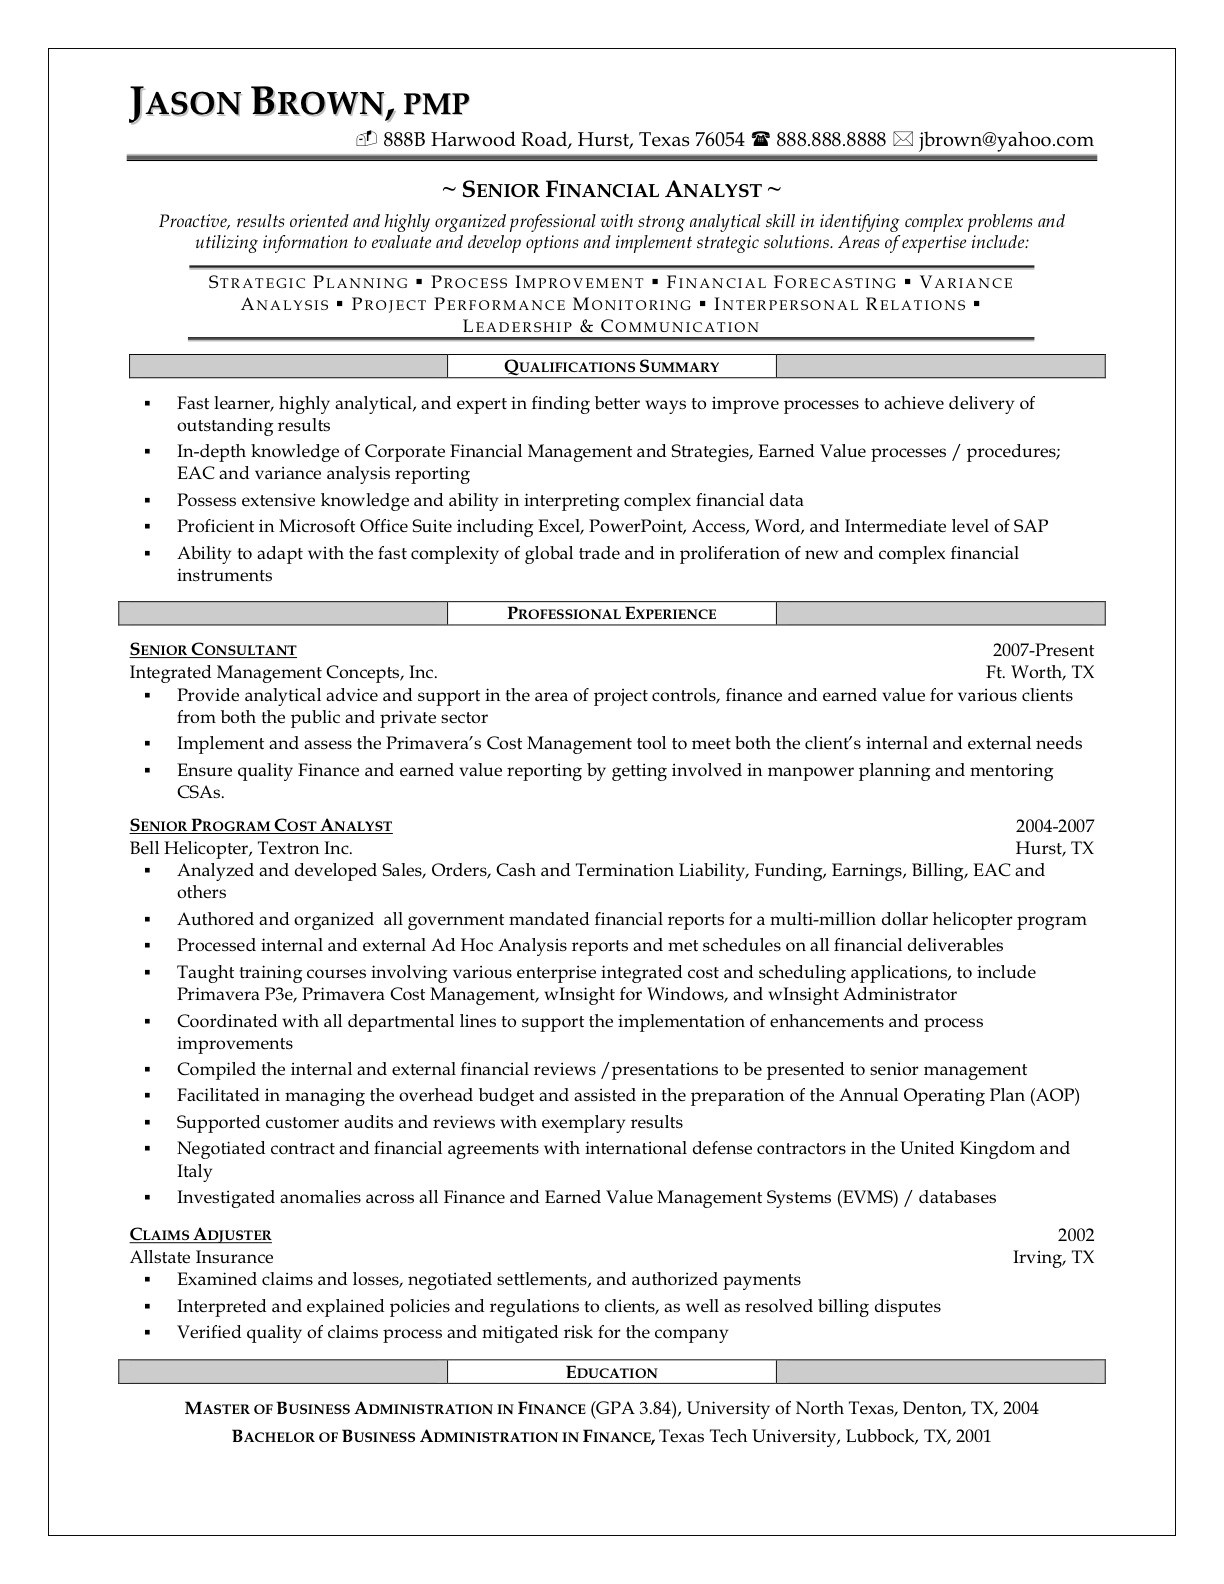 junior financial analyst resume tk junior financial analyst resume